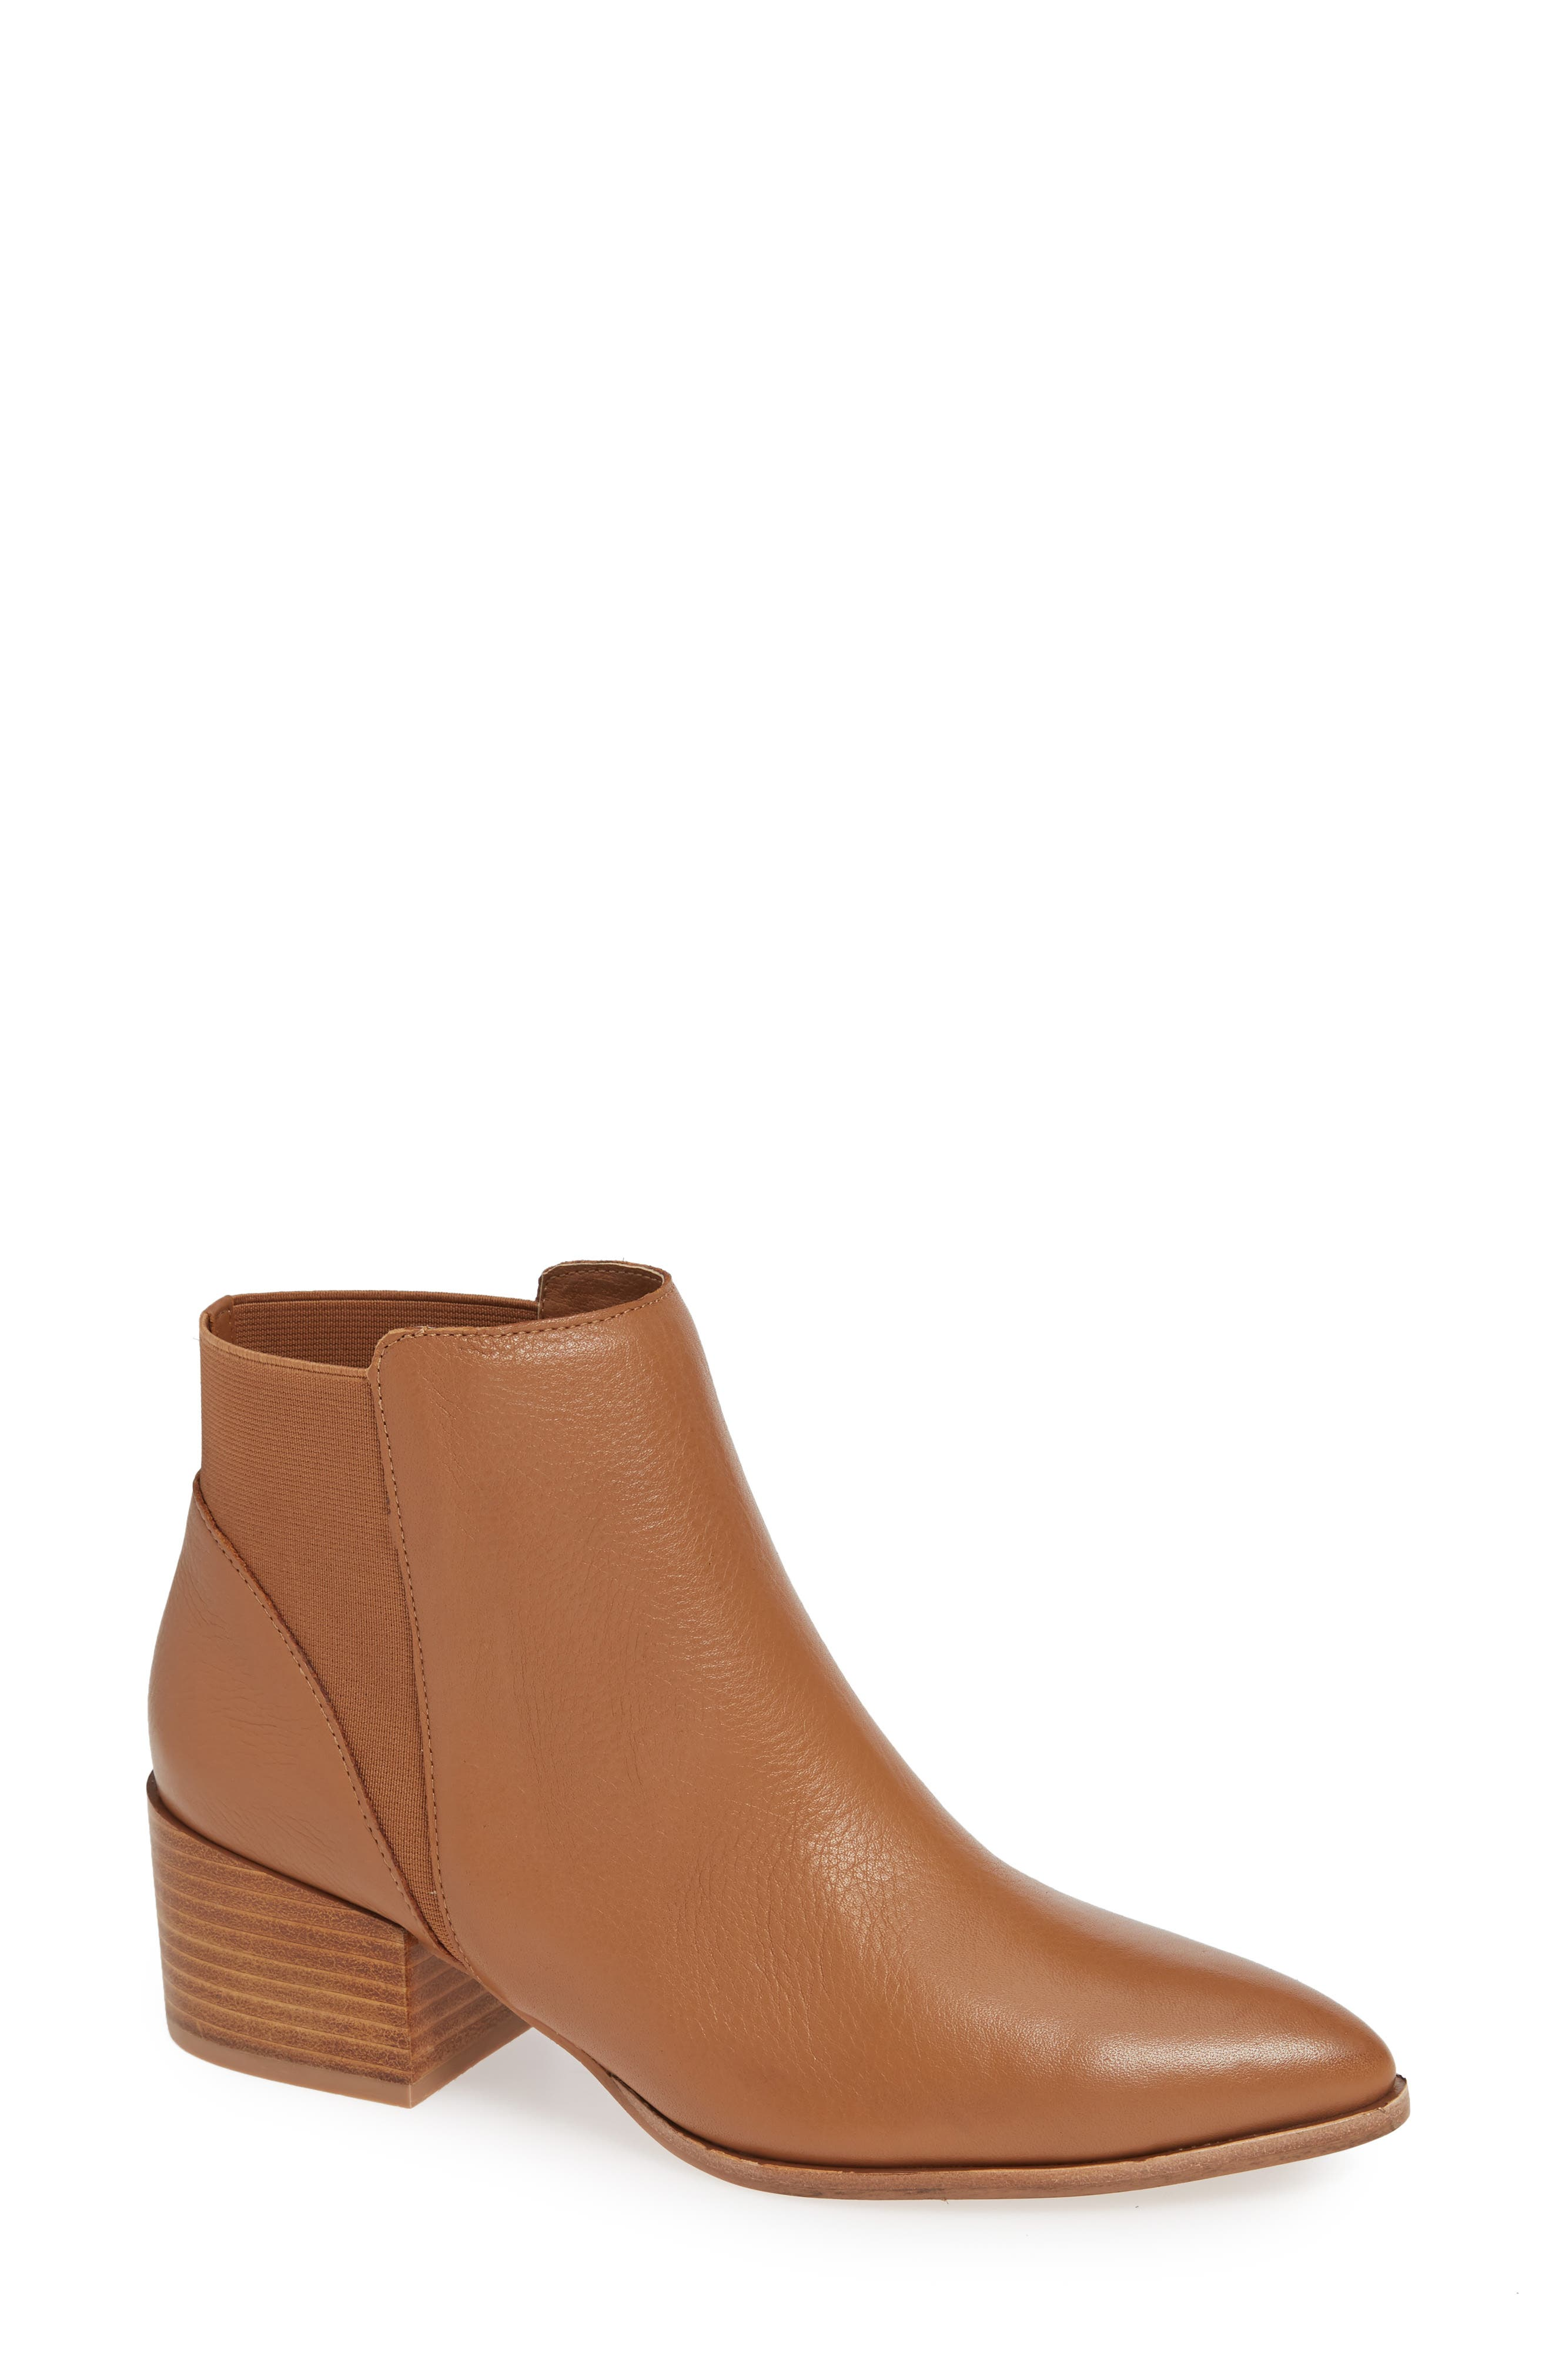 Chinese Laundry Finn Bootie- Brown